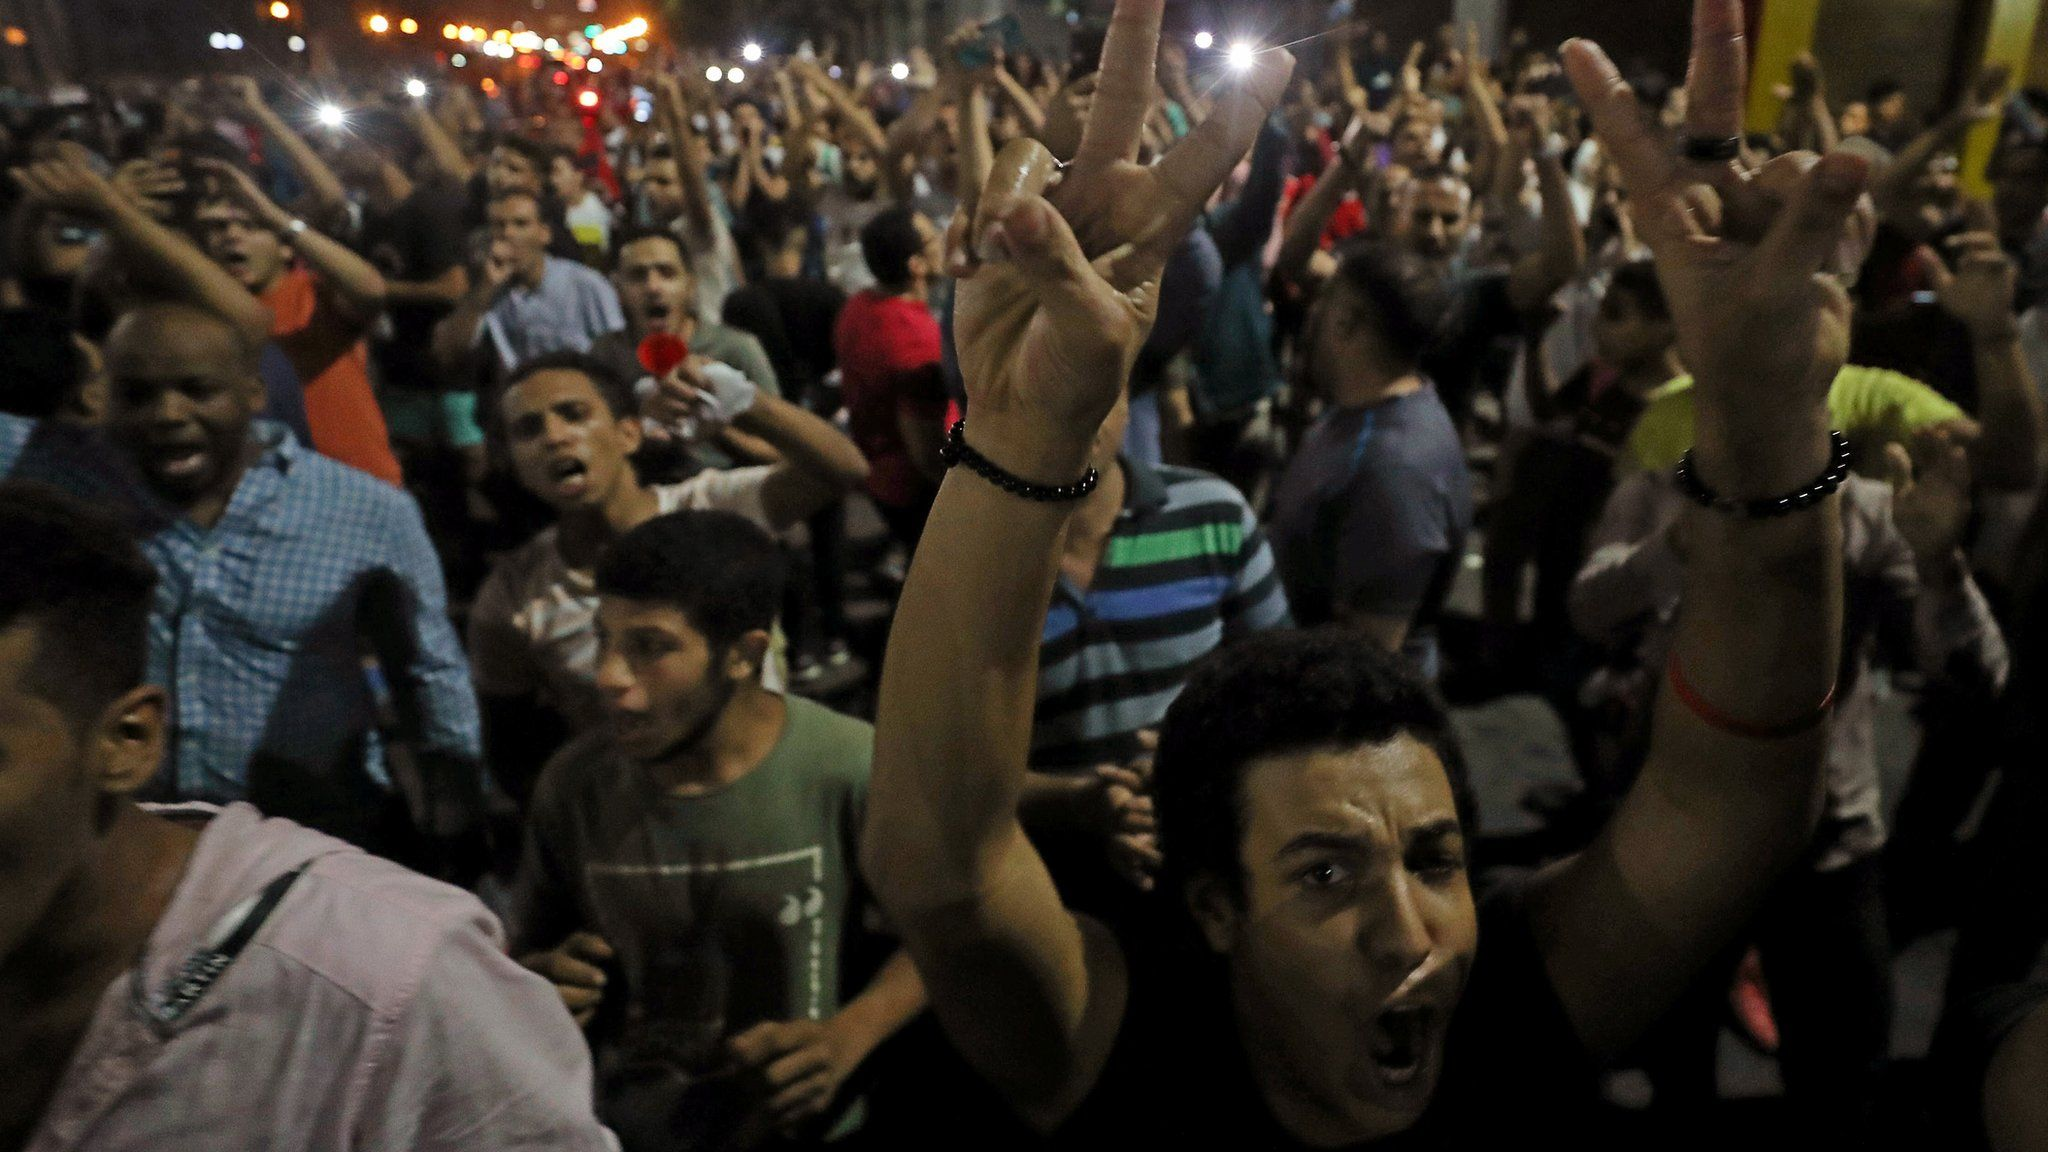 Anti-government protesters gather in central Cairo on 21 September 2019